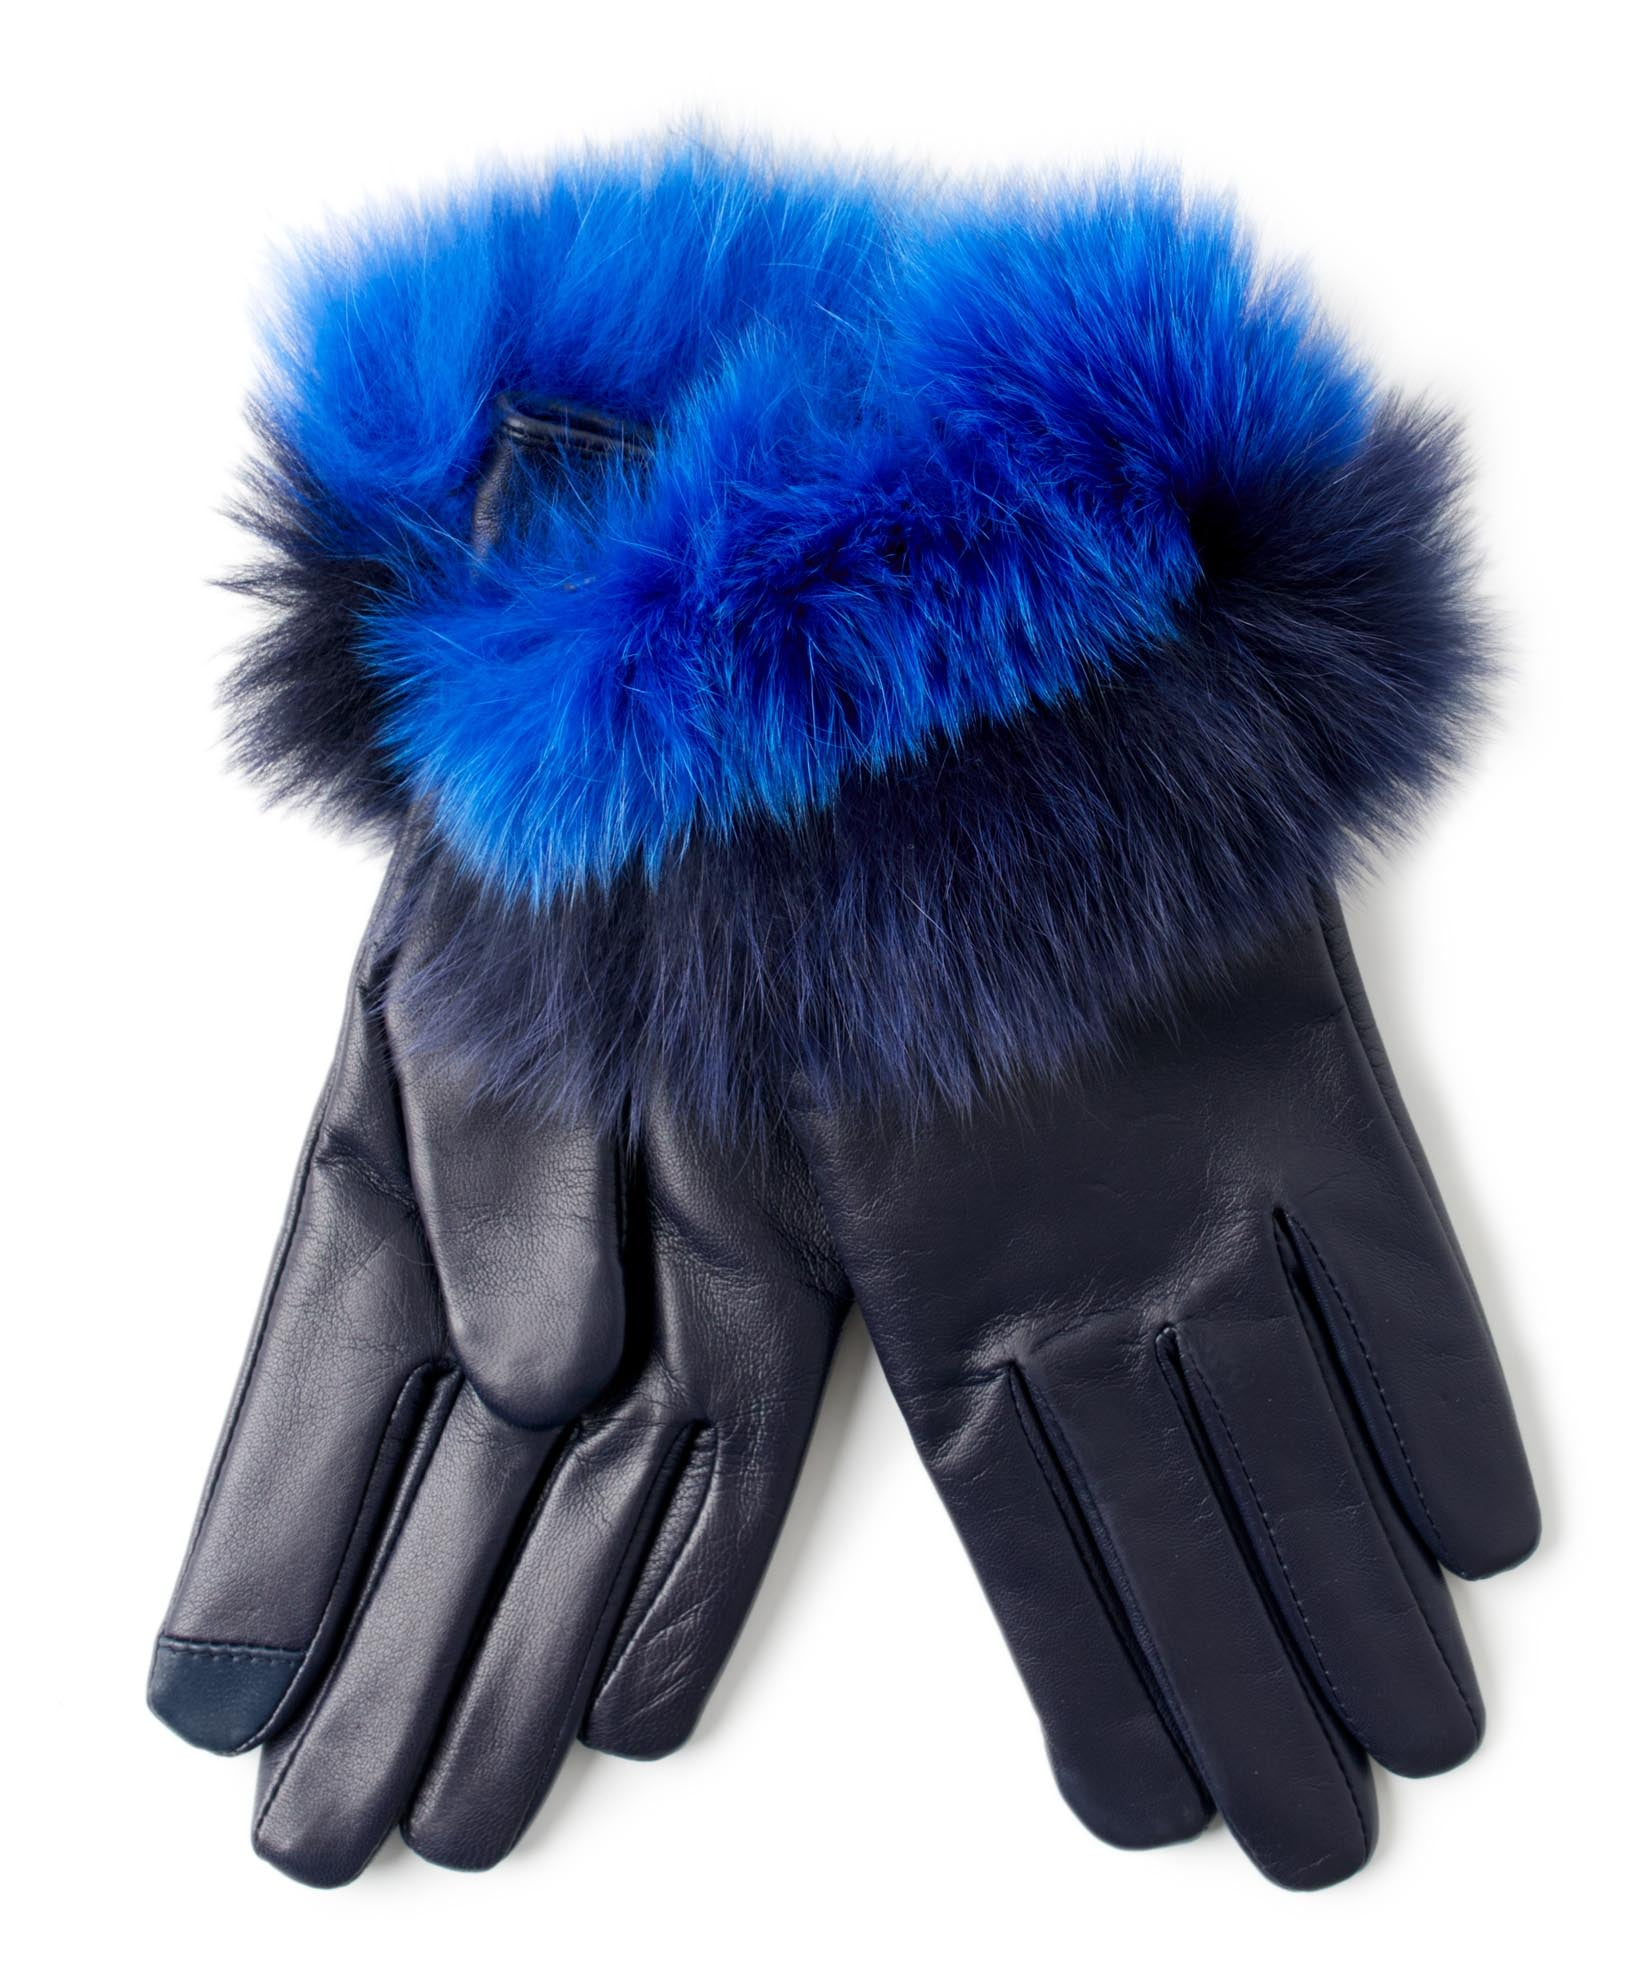 Maritime Navy - Fox Trot Glove